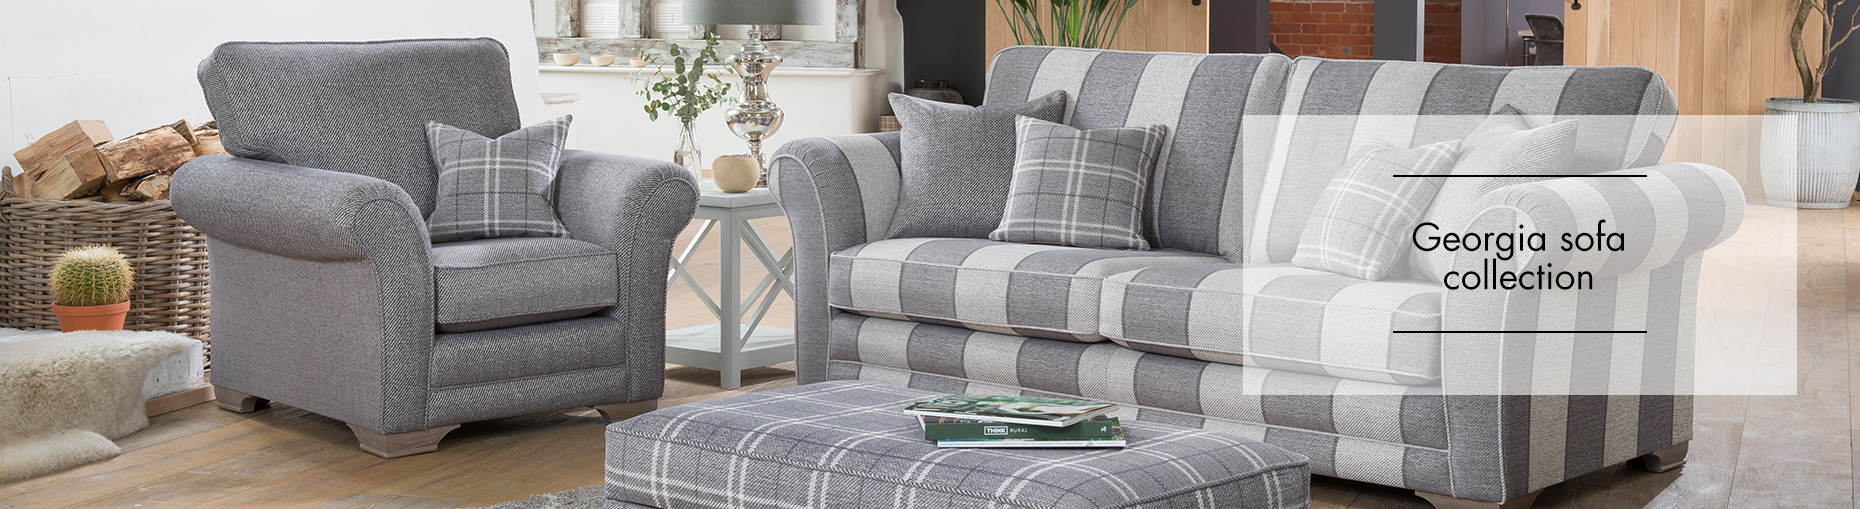 Alstons Georgia Sofa Collection at Forrest Furnishing